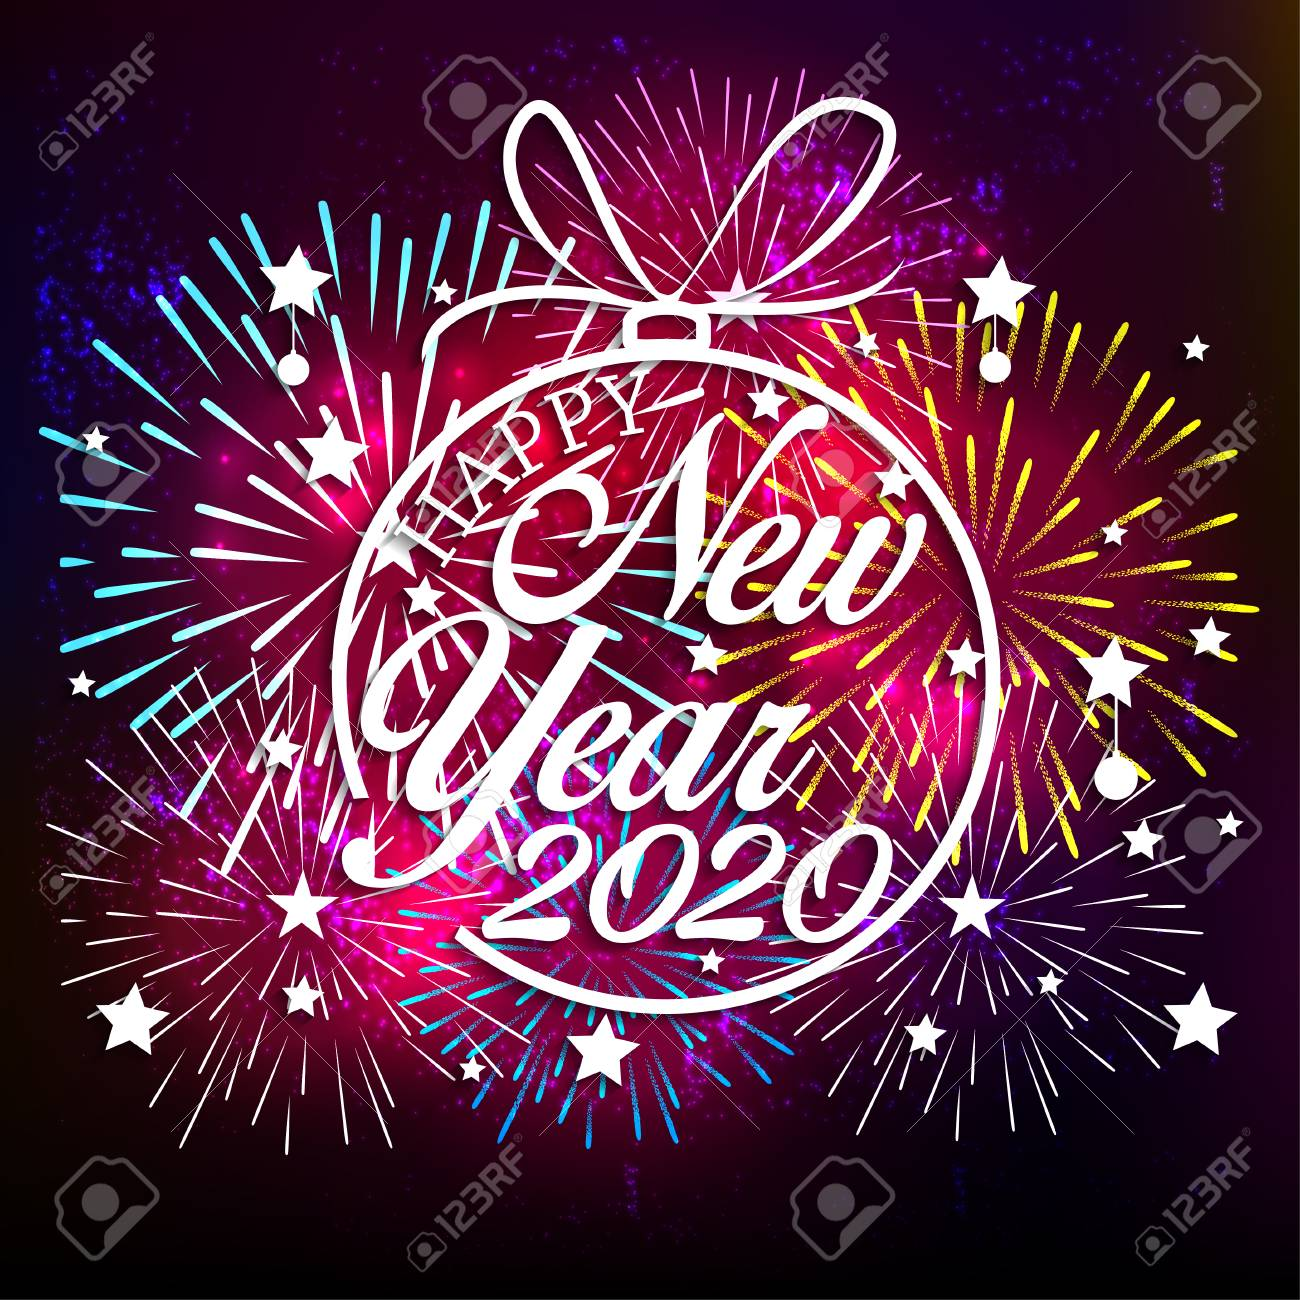 Happy New Year Clipart 2020 68